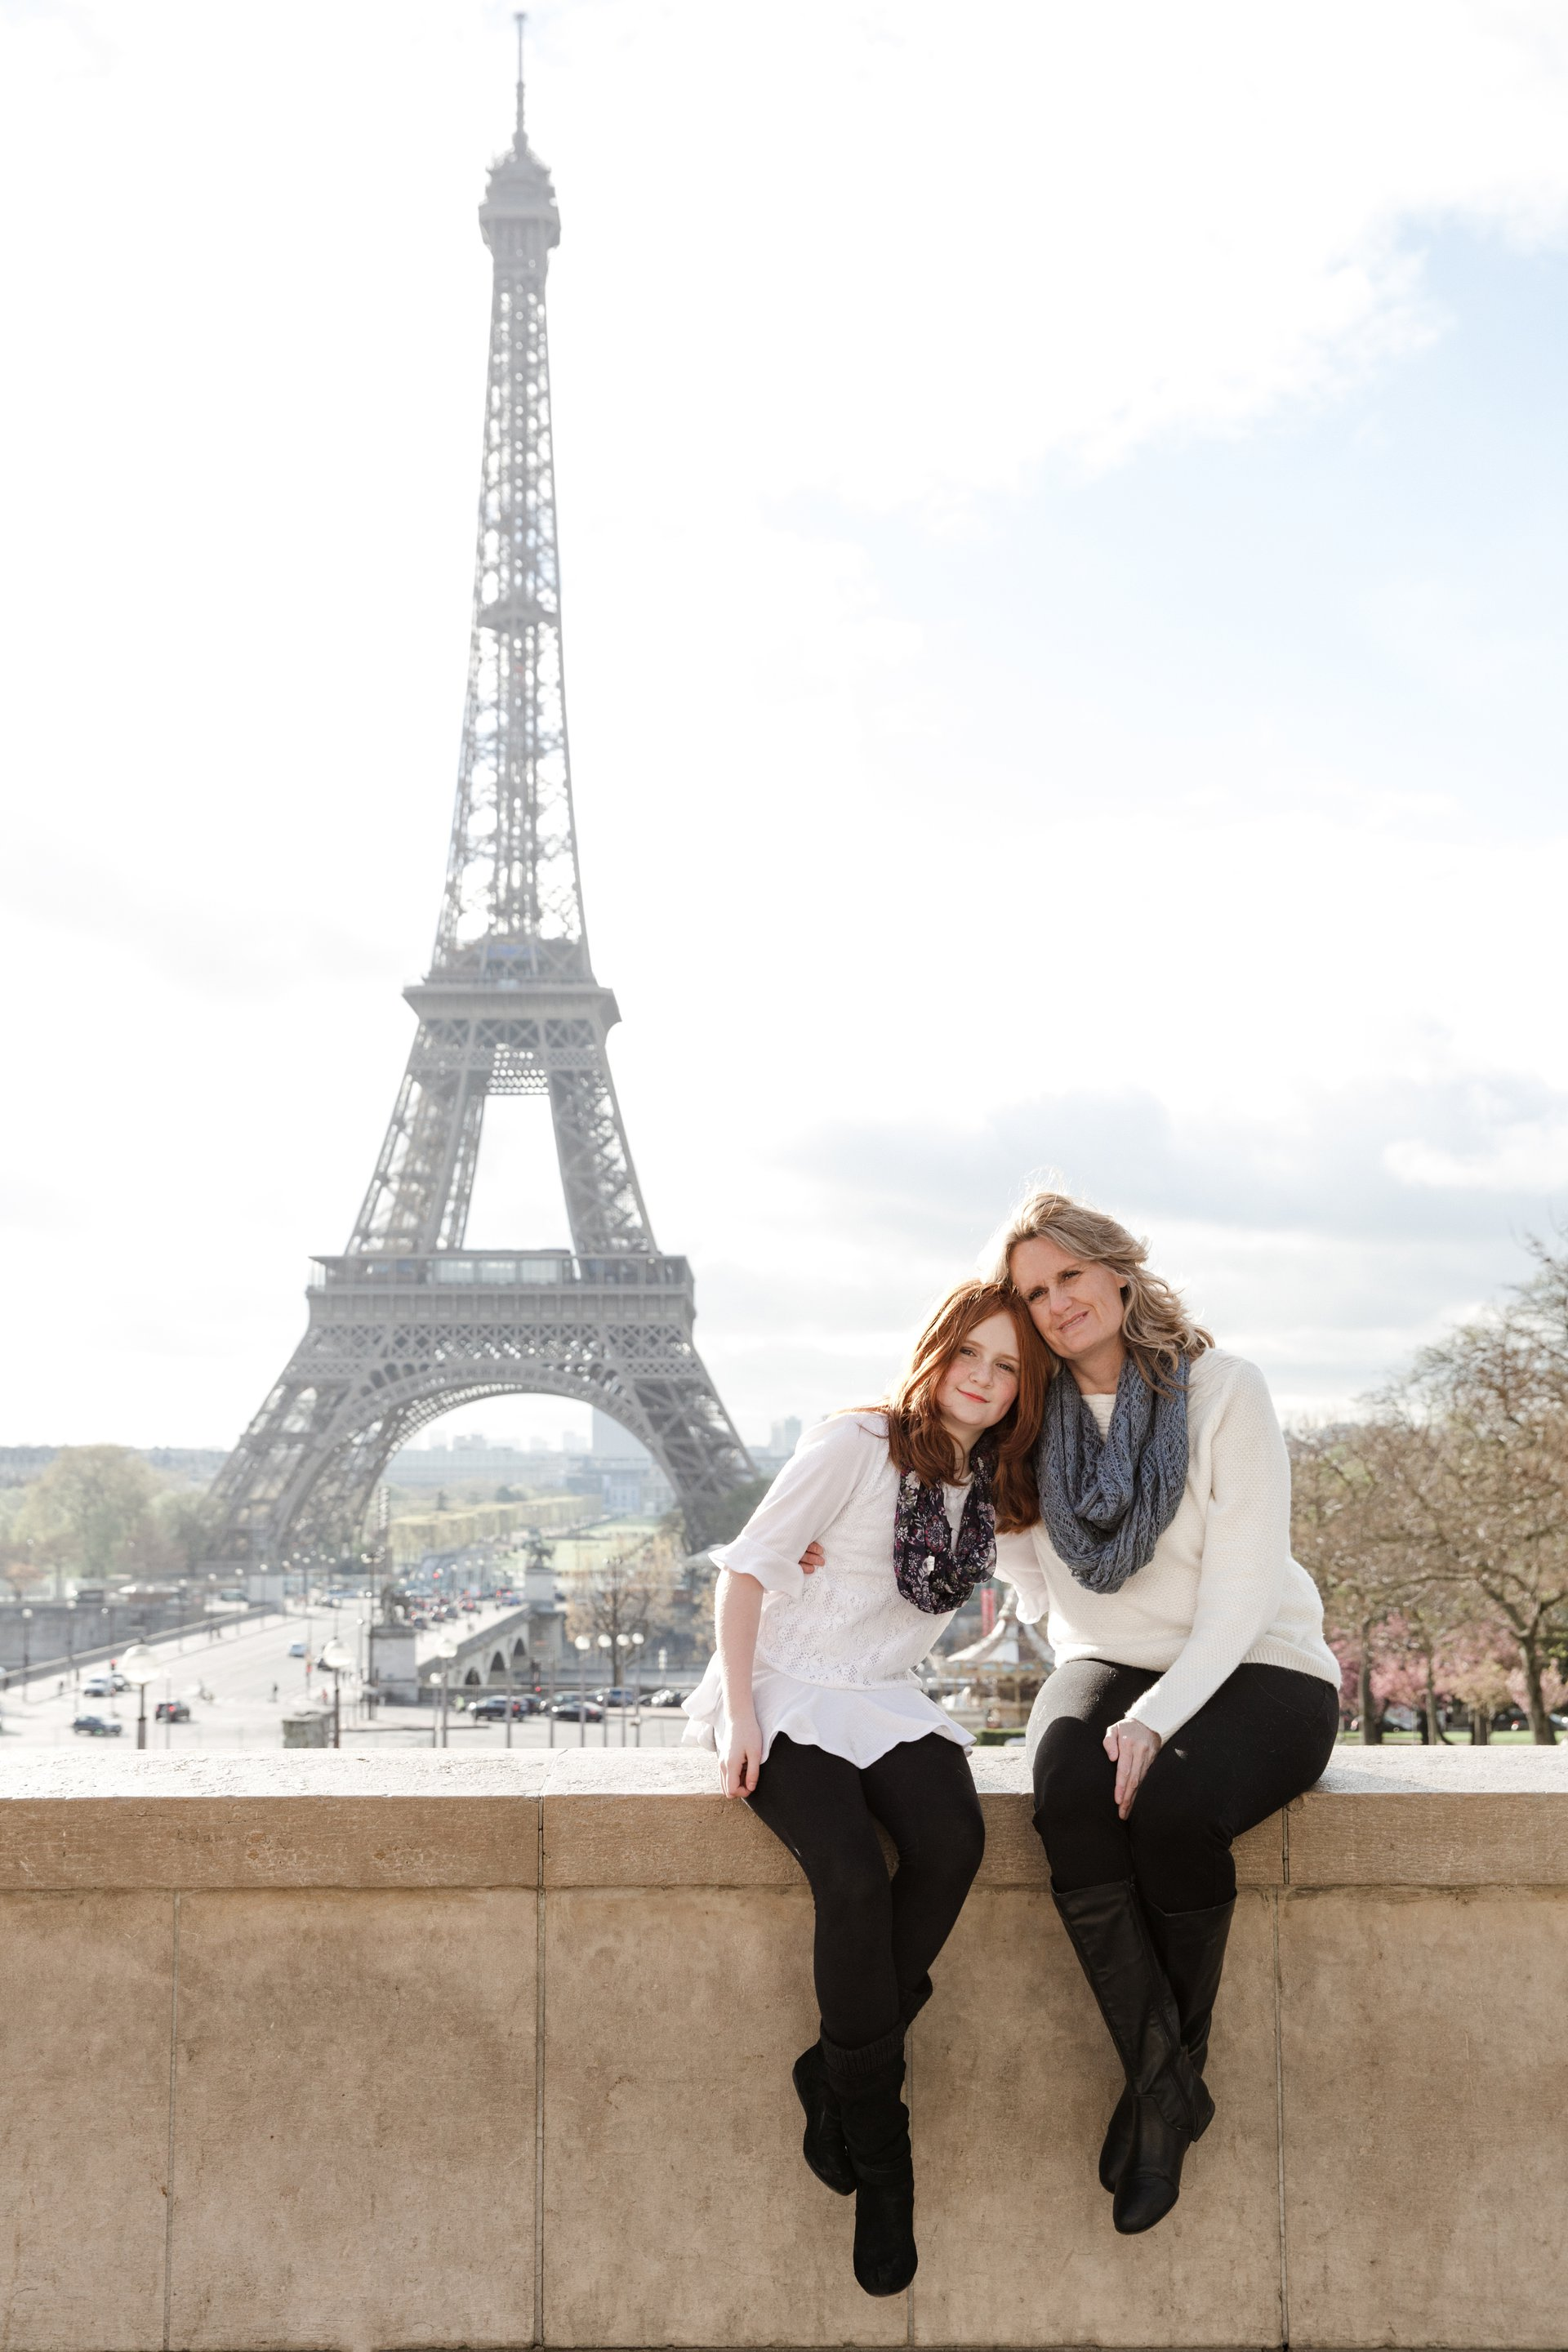 Flytographer Travel Story - Amazing Paris France Vacation Memories